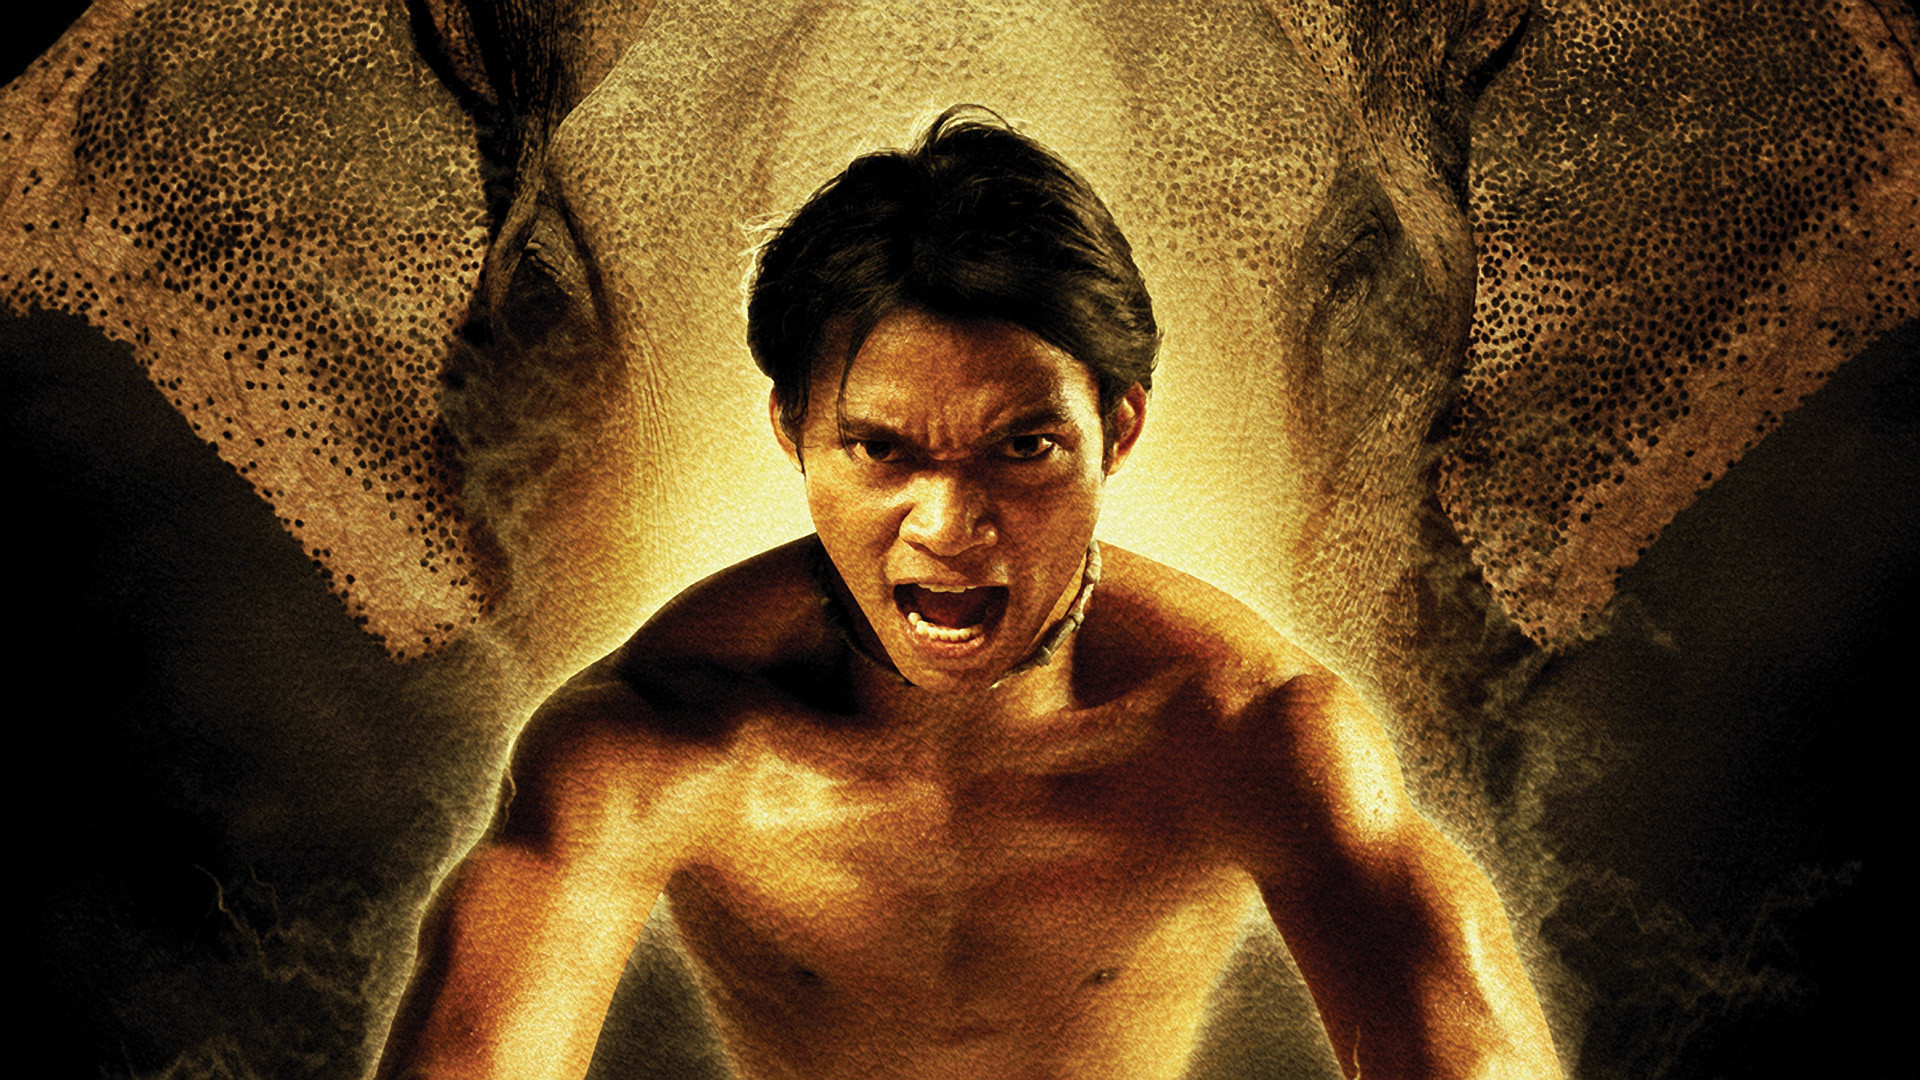 Jaa Good tony jaa wallpapers images photos pictures backgrounds